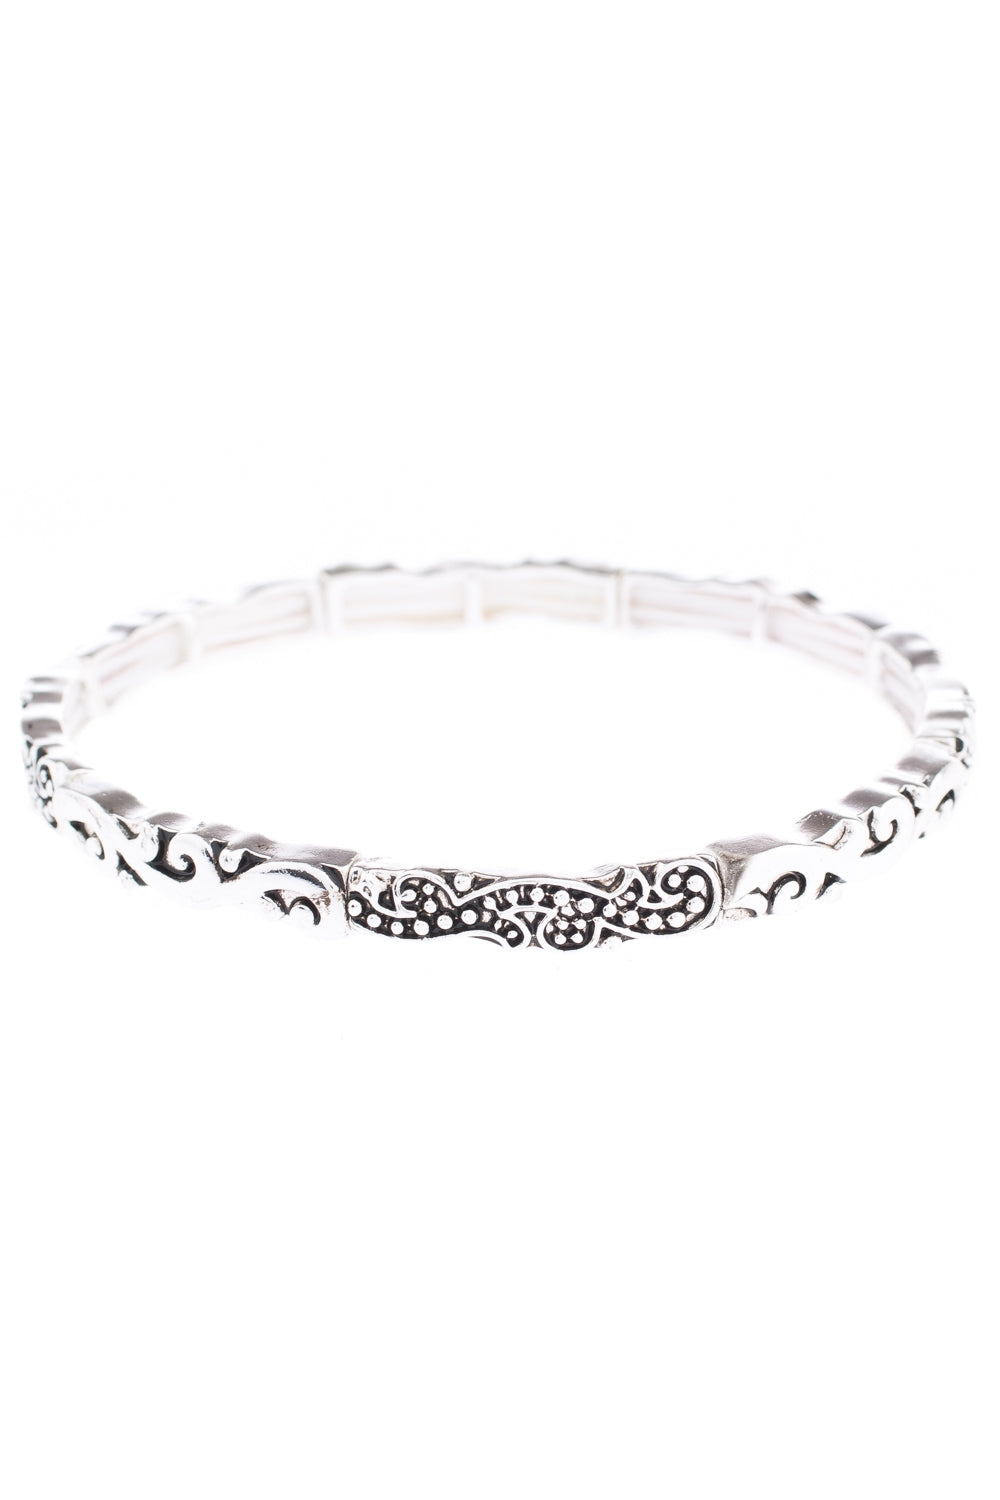 Type 2 Filigree Finesse Bracelet